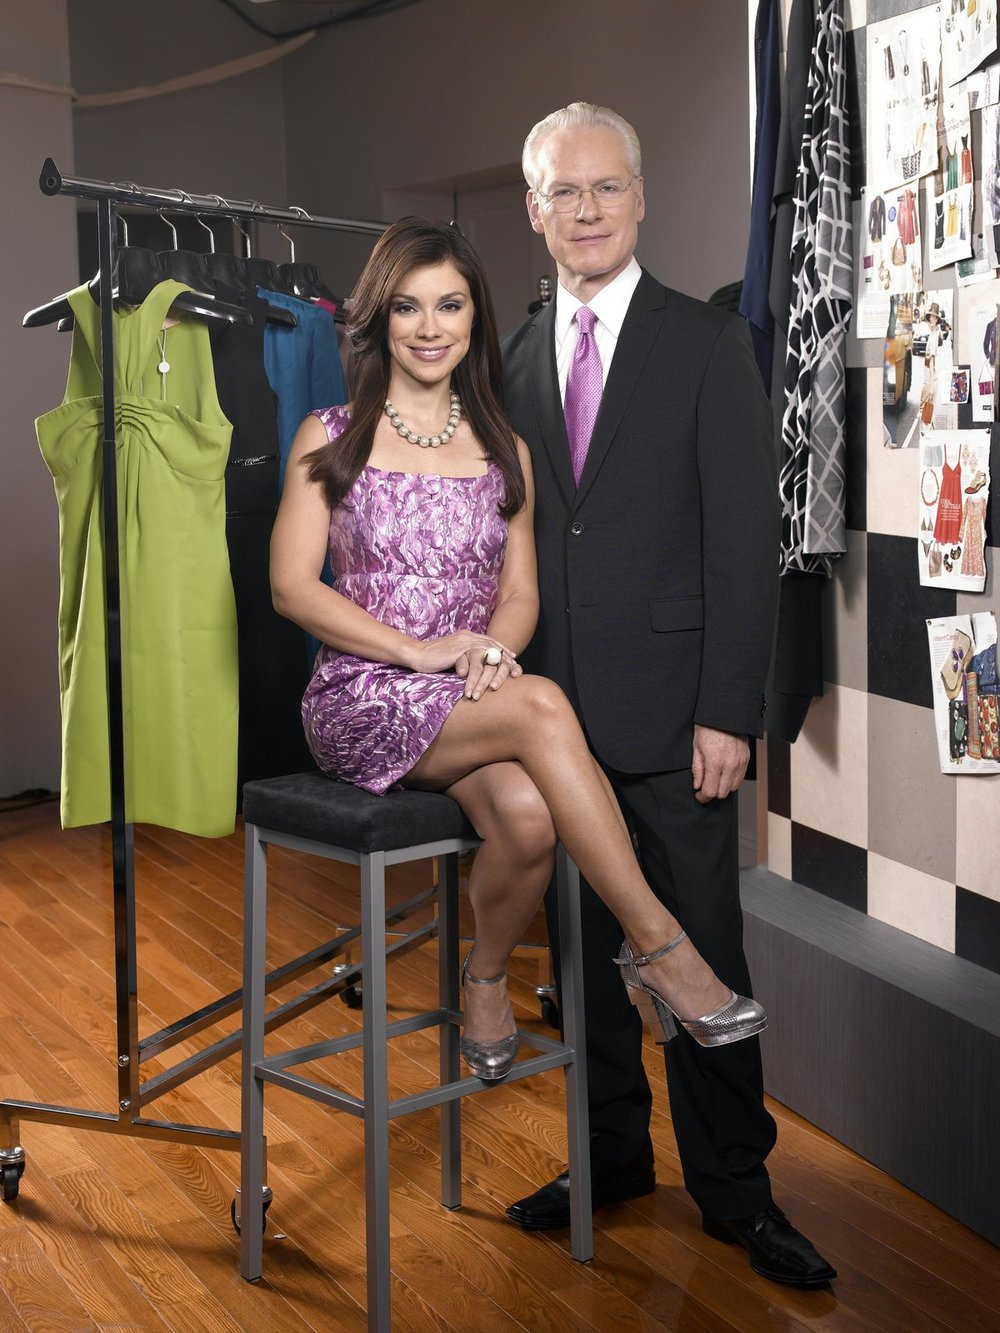 Tim Gunn, and Season 2 co-hosted by model Gretta Monahan